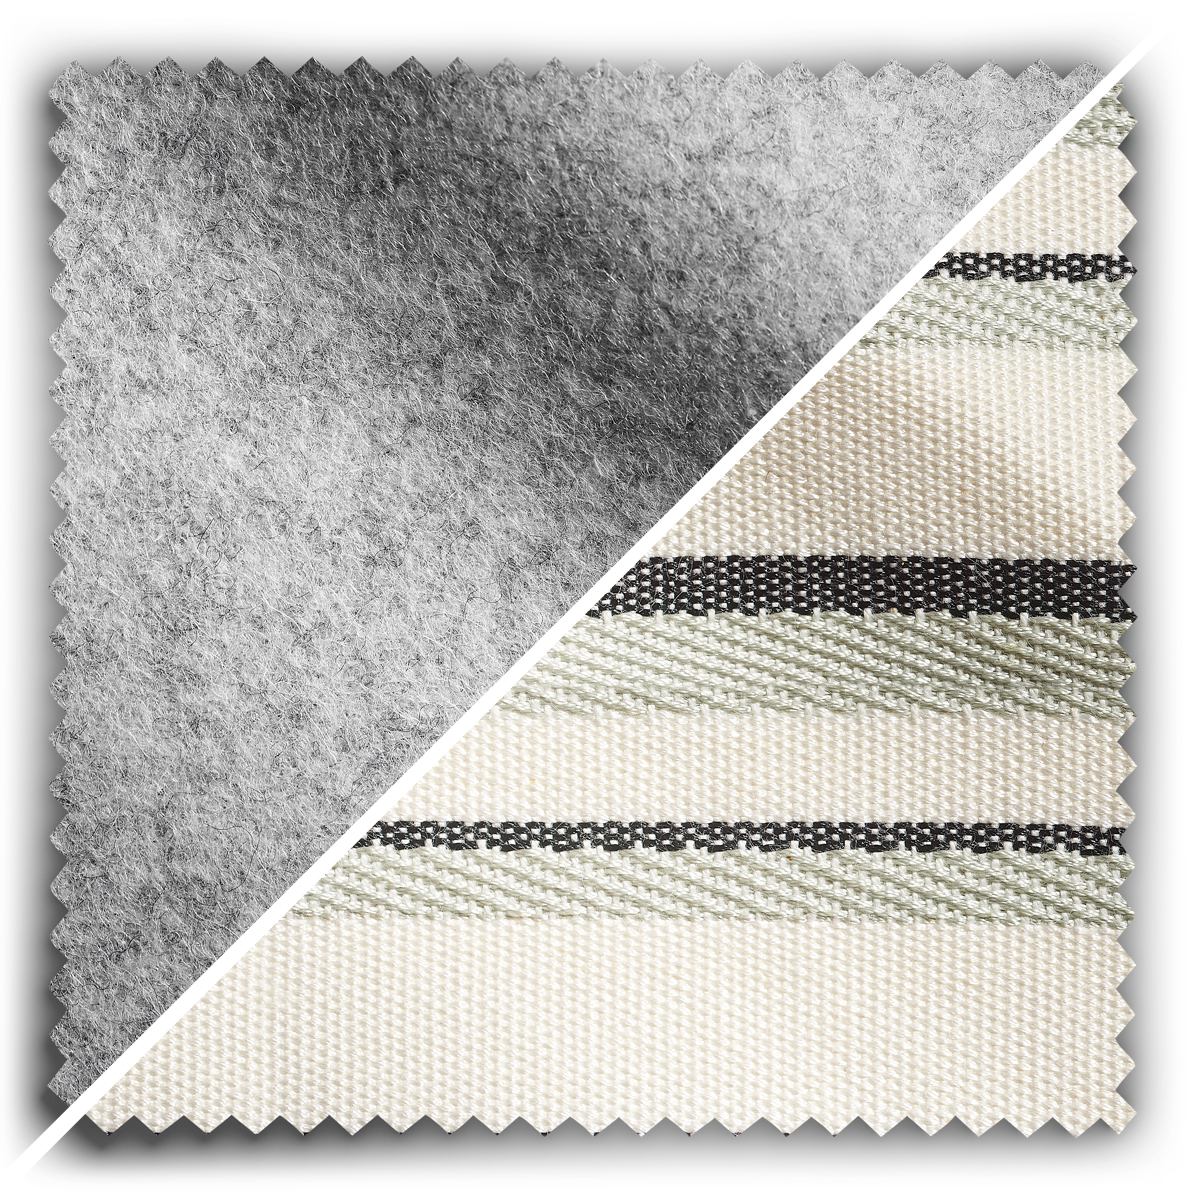 Image of Studio Stripes Grey Wool Felt fabric